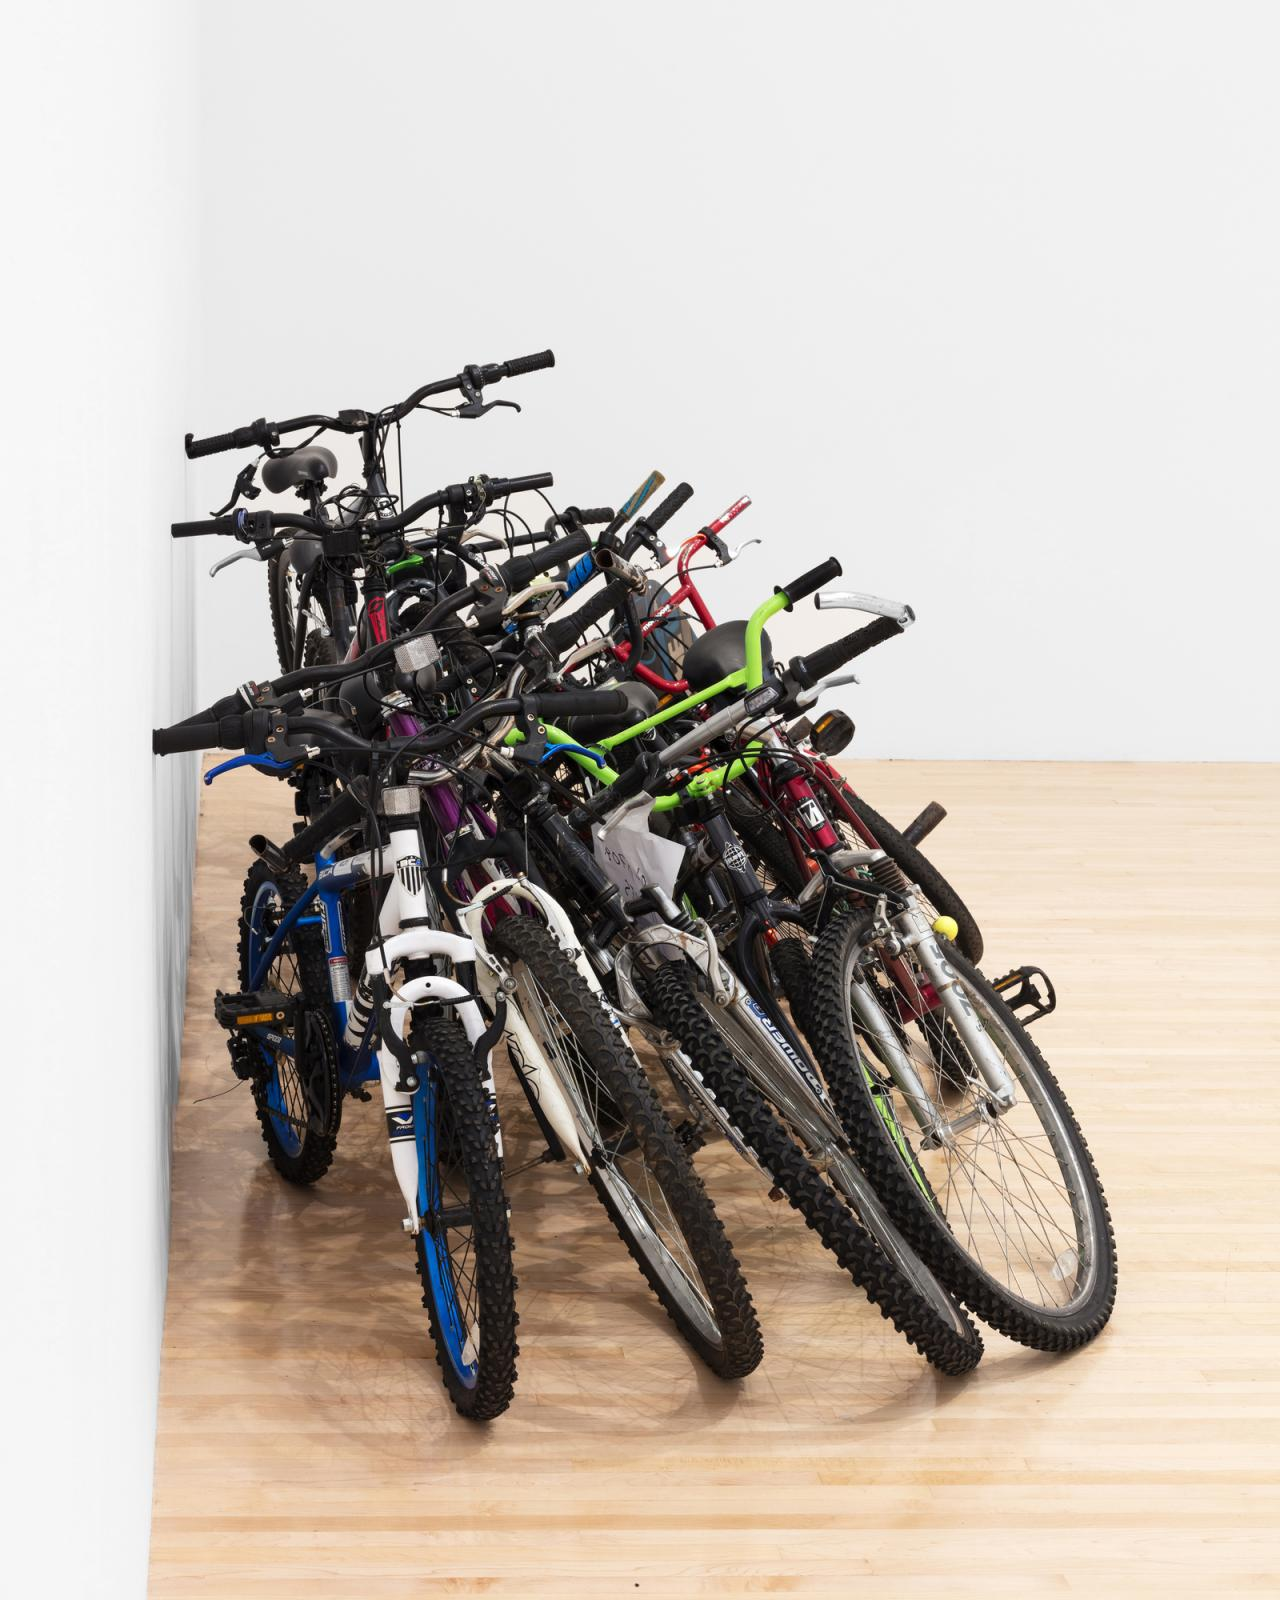 Cameron Rowland Group of 11 Used Bikes – Item: 0281-007089 , 2018 Group of 11 Used Bikes sold for $287 45 x 130 x 54 inches (114.30 × 330.20 × 137.16 cm) Rental at cost